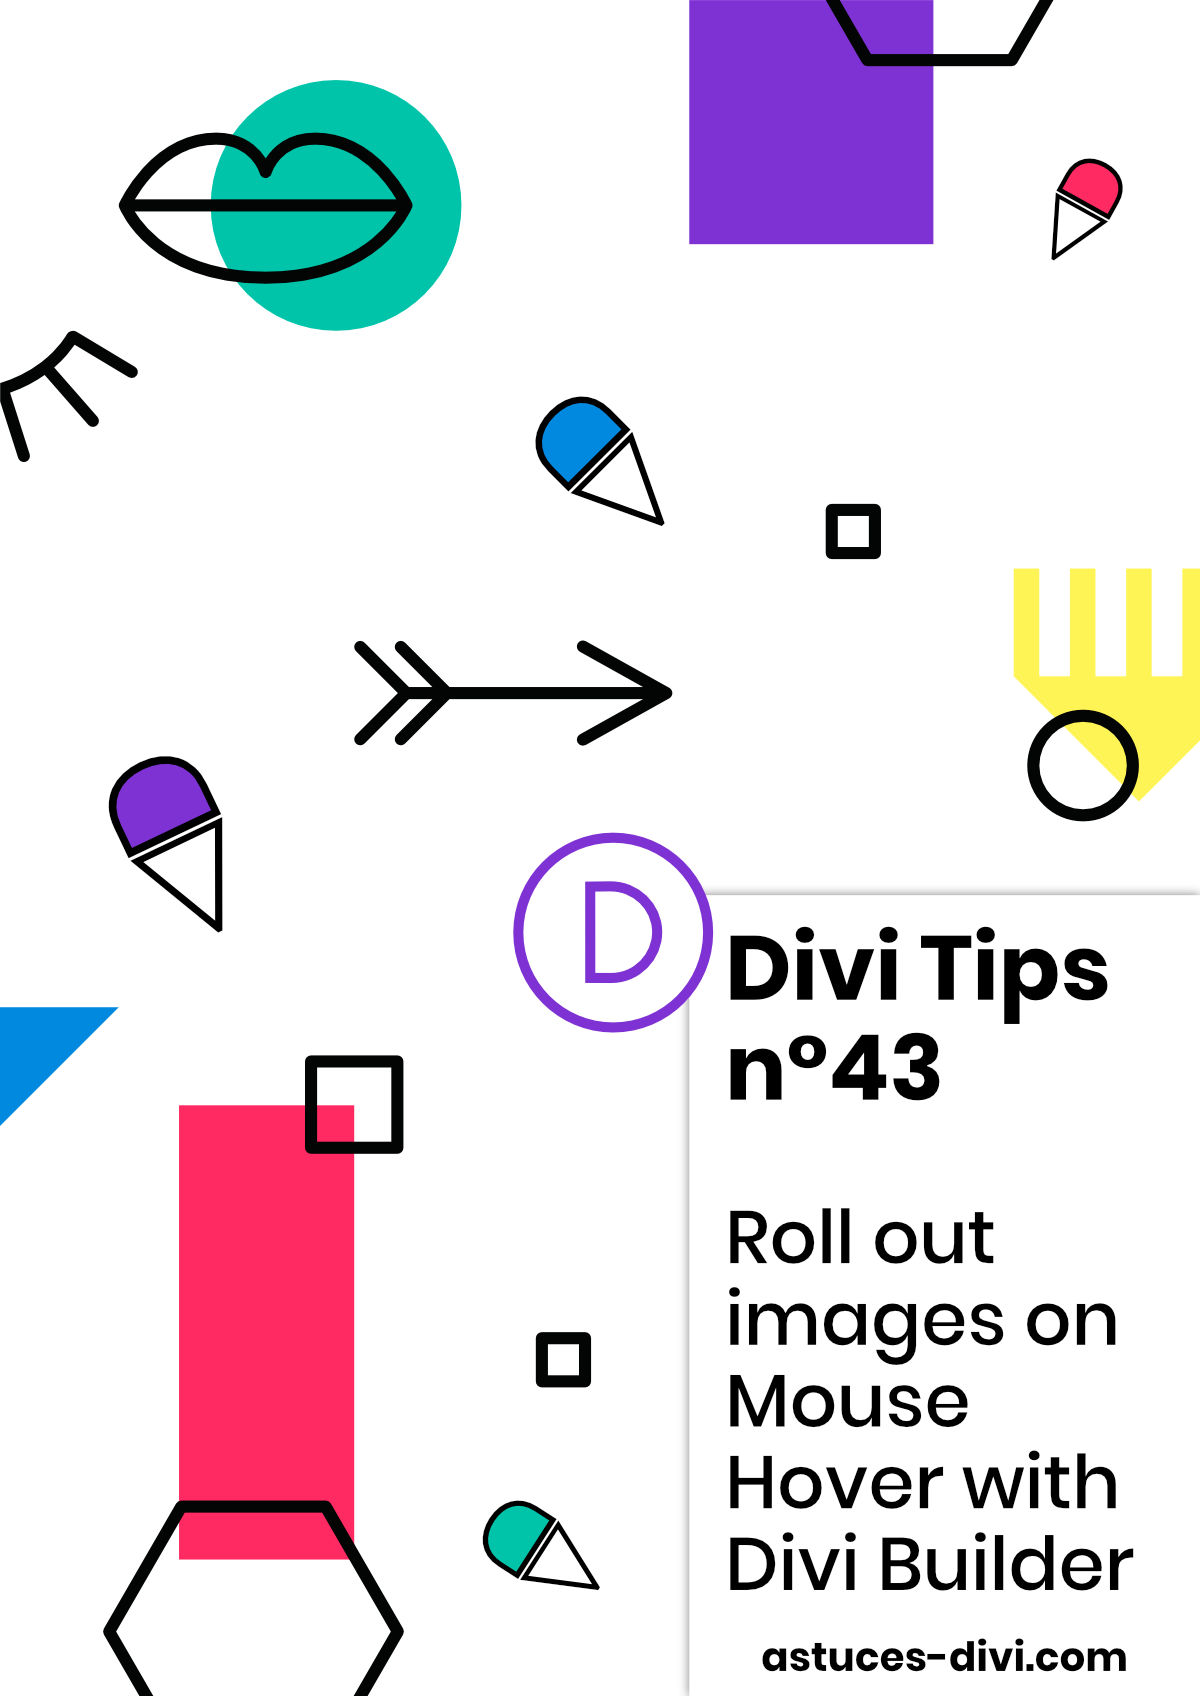 Roll out images on mouse hover with Divi Builder